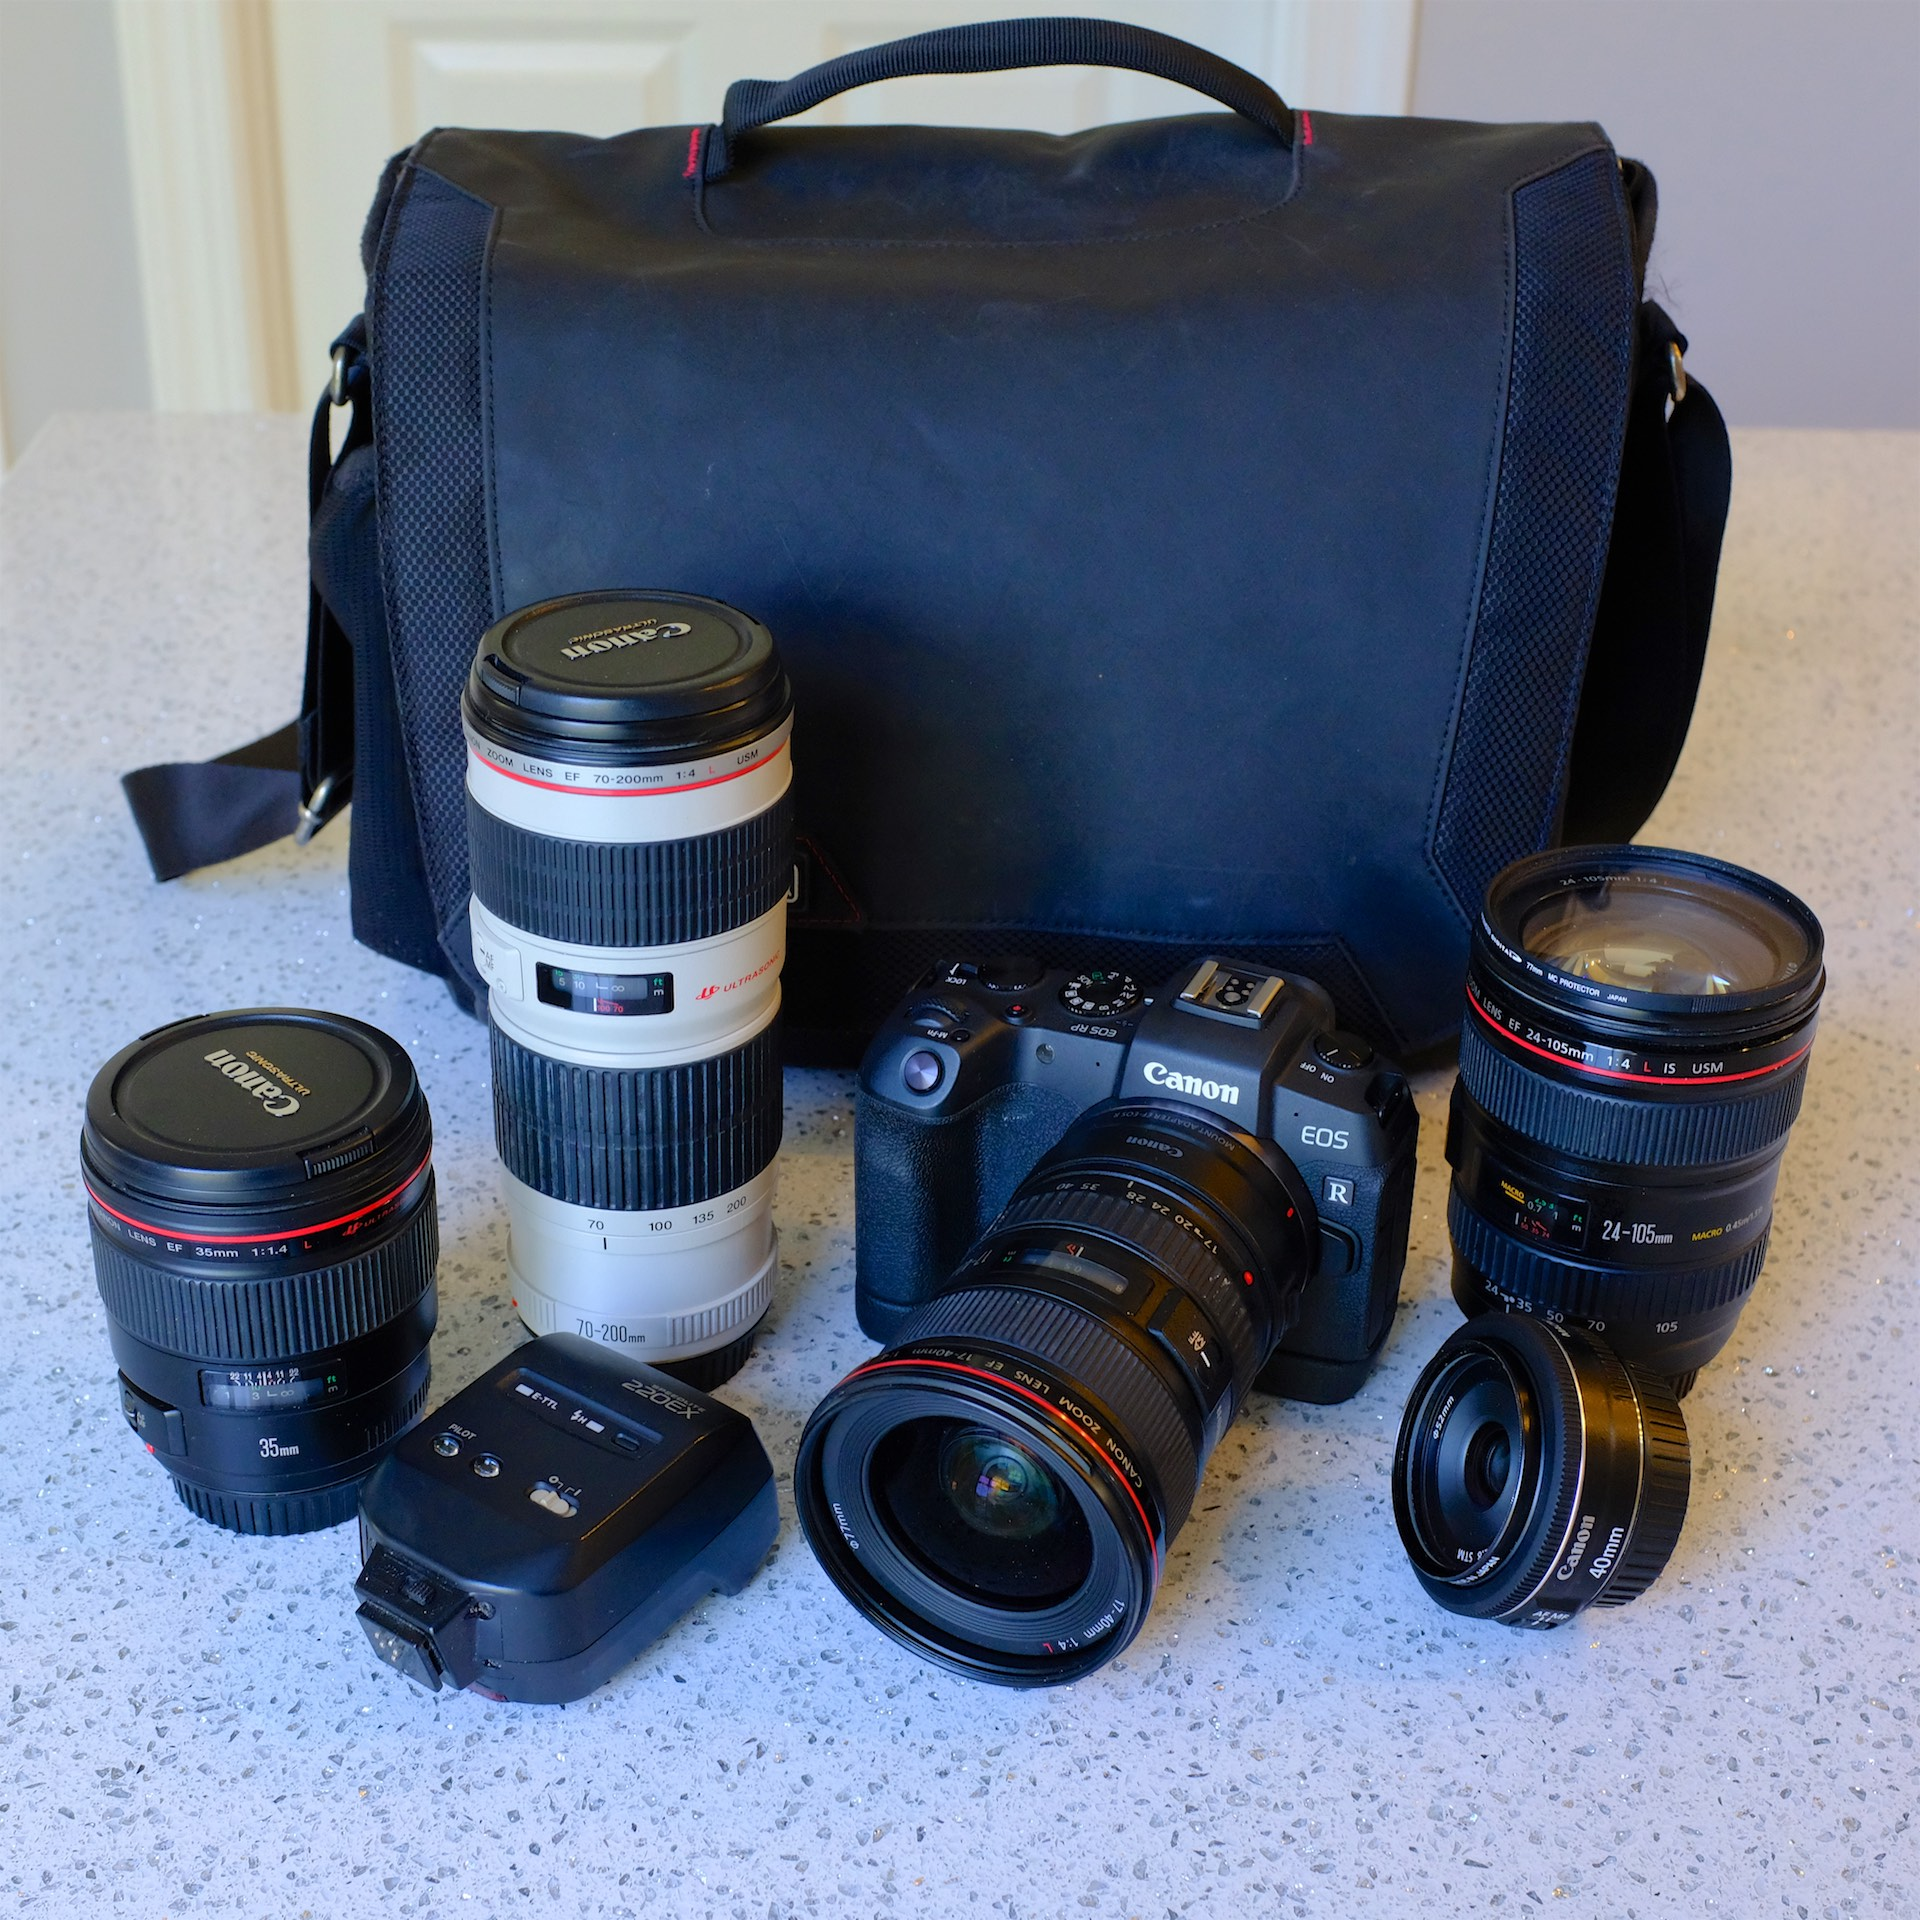 My full travel kit for Turks and Caicos with the addition of the 24-105L IS and 35L lenses, all packed into my larger ThinkTank Spectral 10 bag.